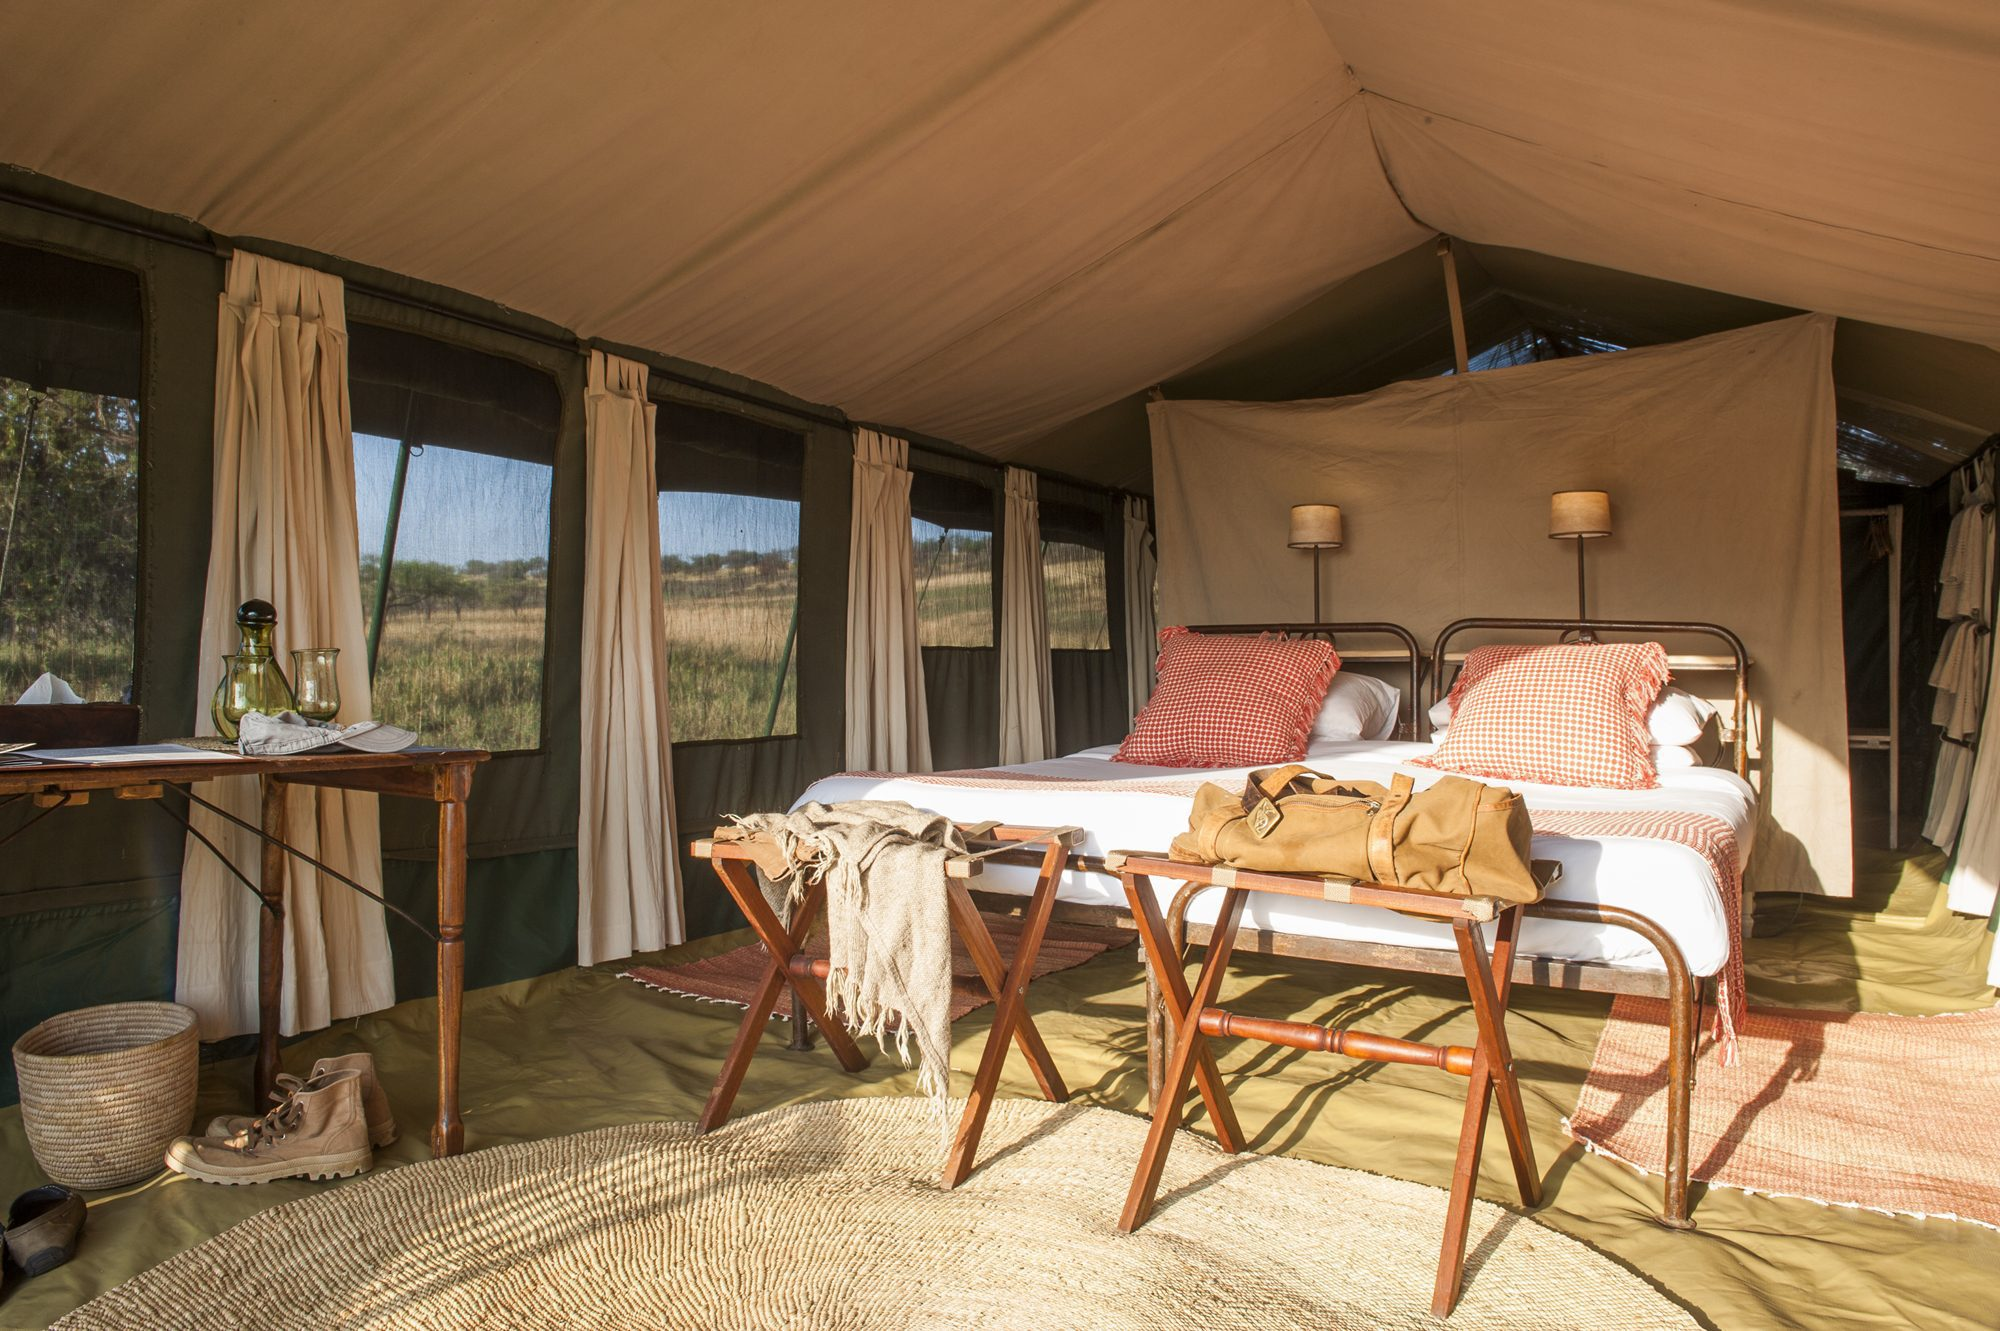 stay in a tent at Serengeti Safari Camp on our northern Tanzania safari